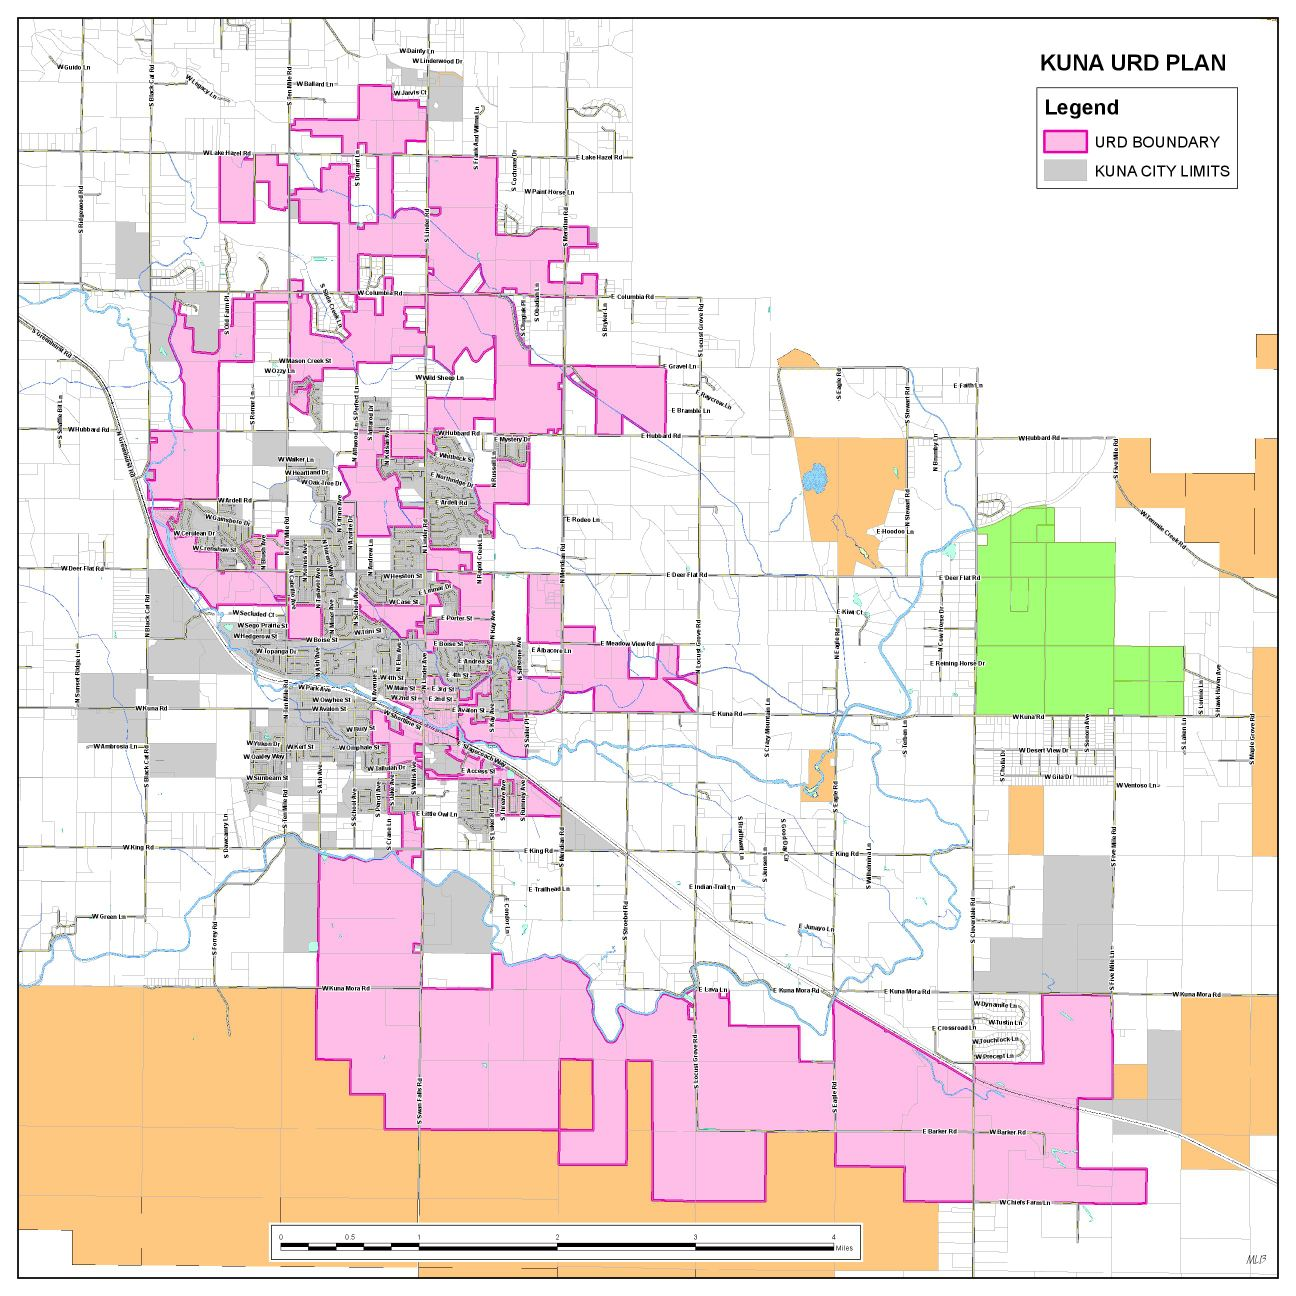 Map of Kuna city limits and urban renewal district plan